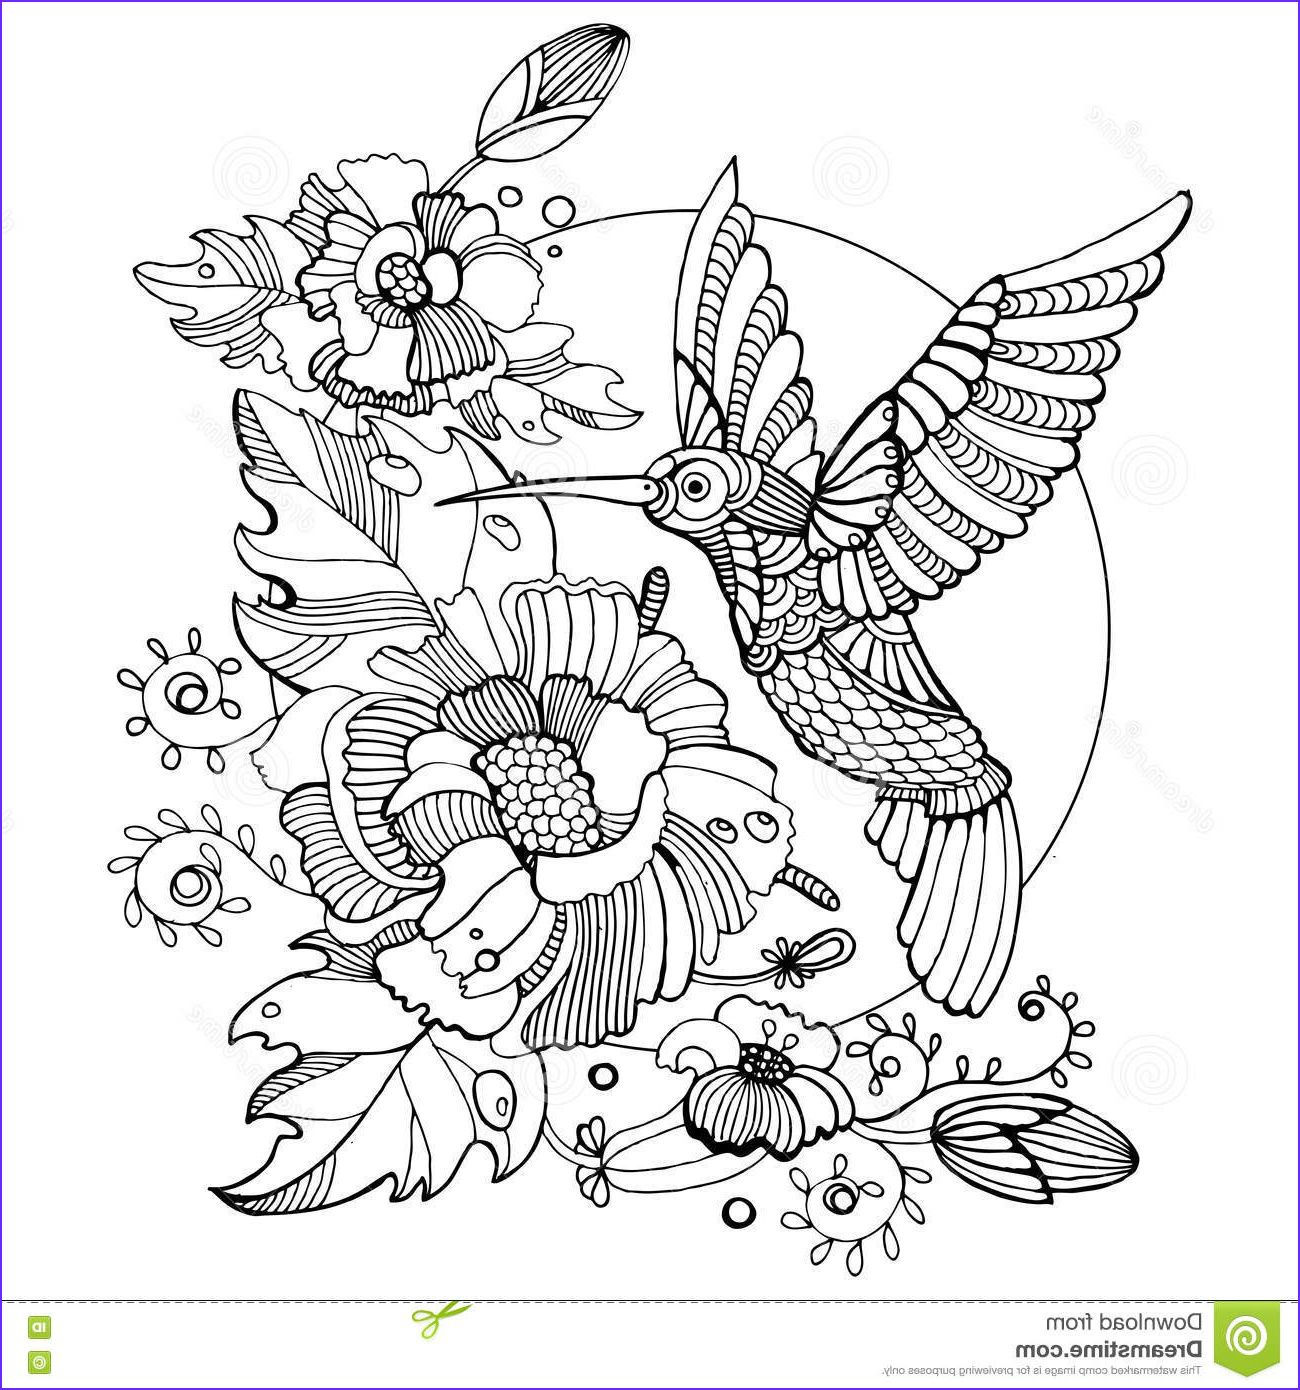 Pin By Jeanne On Art Hummingbird Coloring Pages Bird Coloring Pages Dragon Coloring Pages